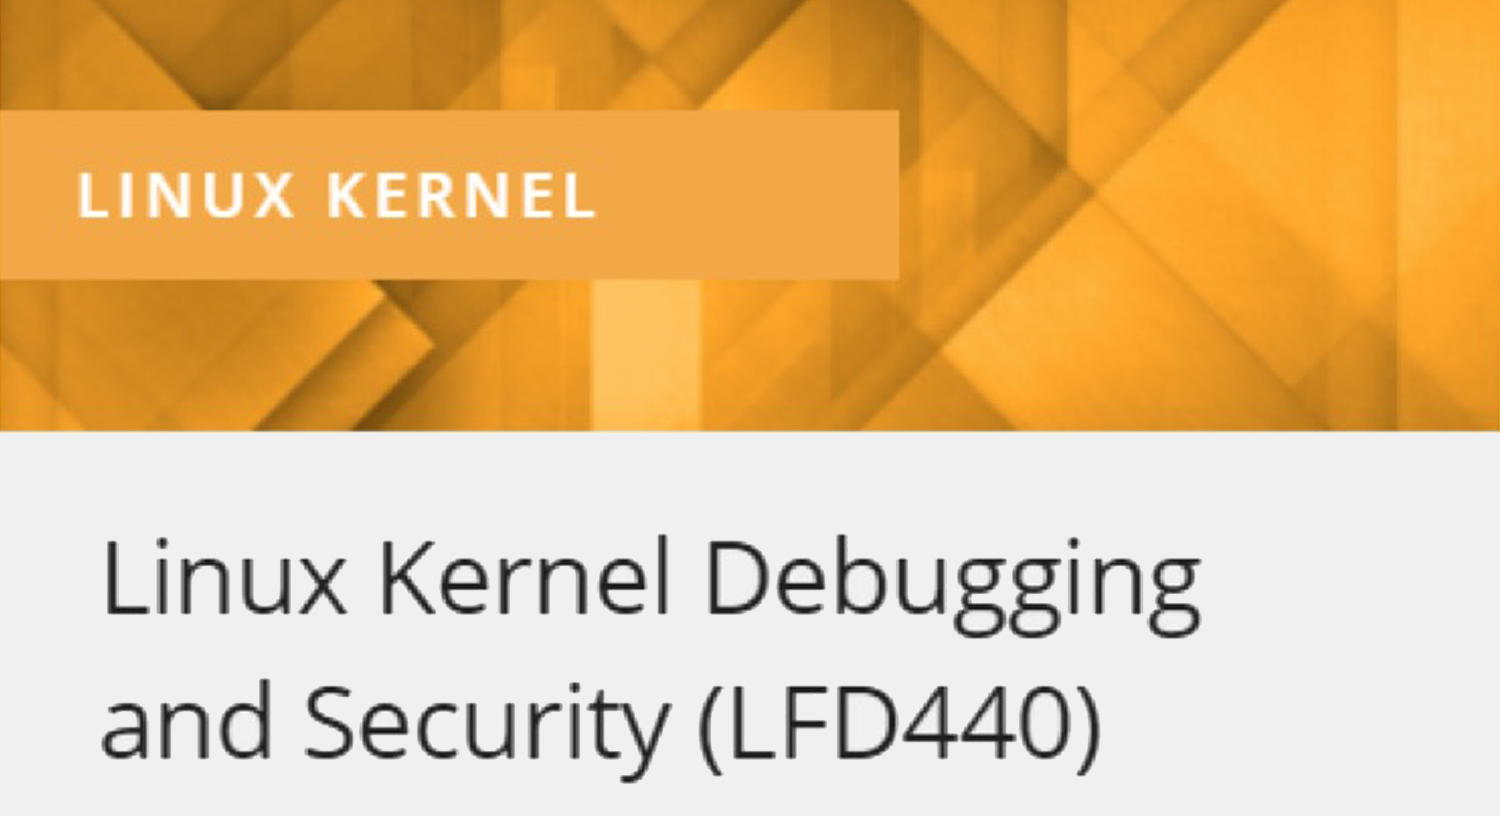 Linux Kernel Debugging and Security